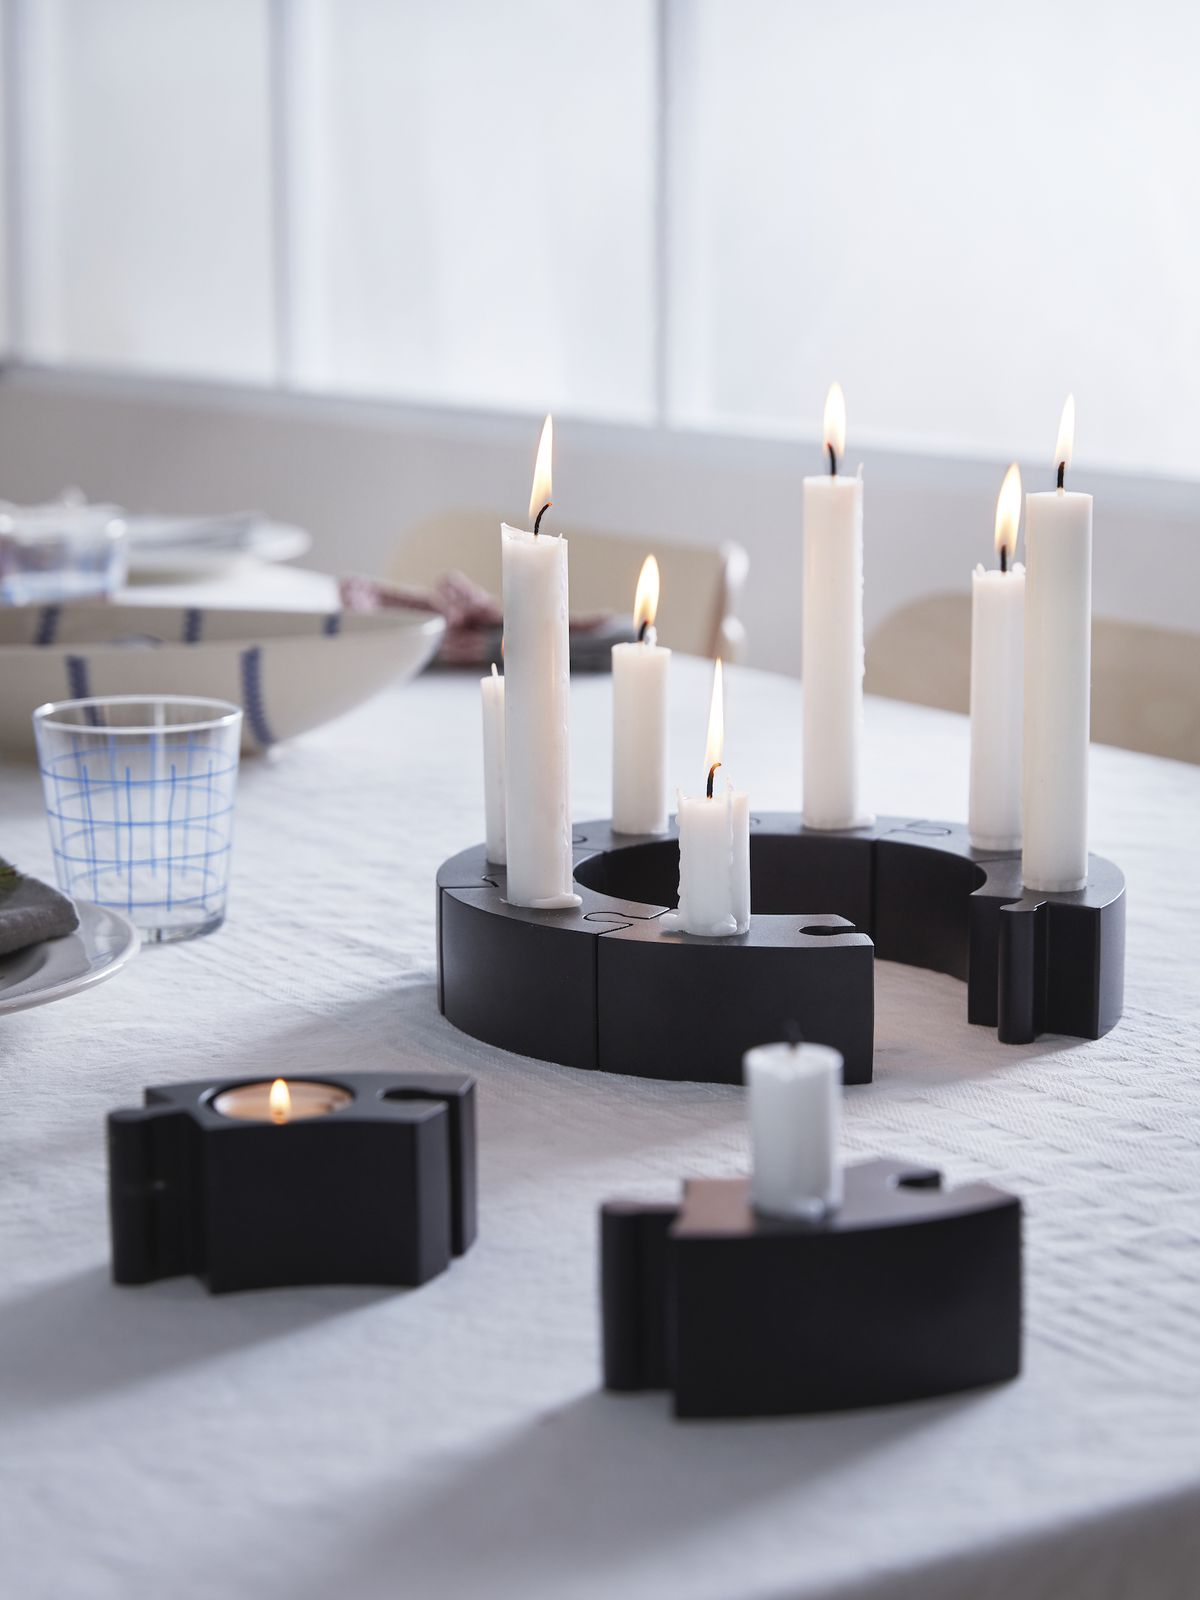 Curved candle holders lock into each other like a puzzle.